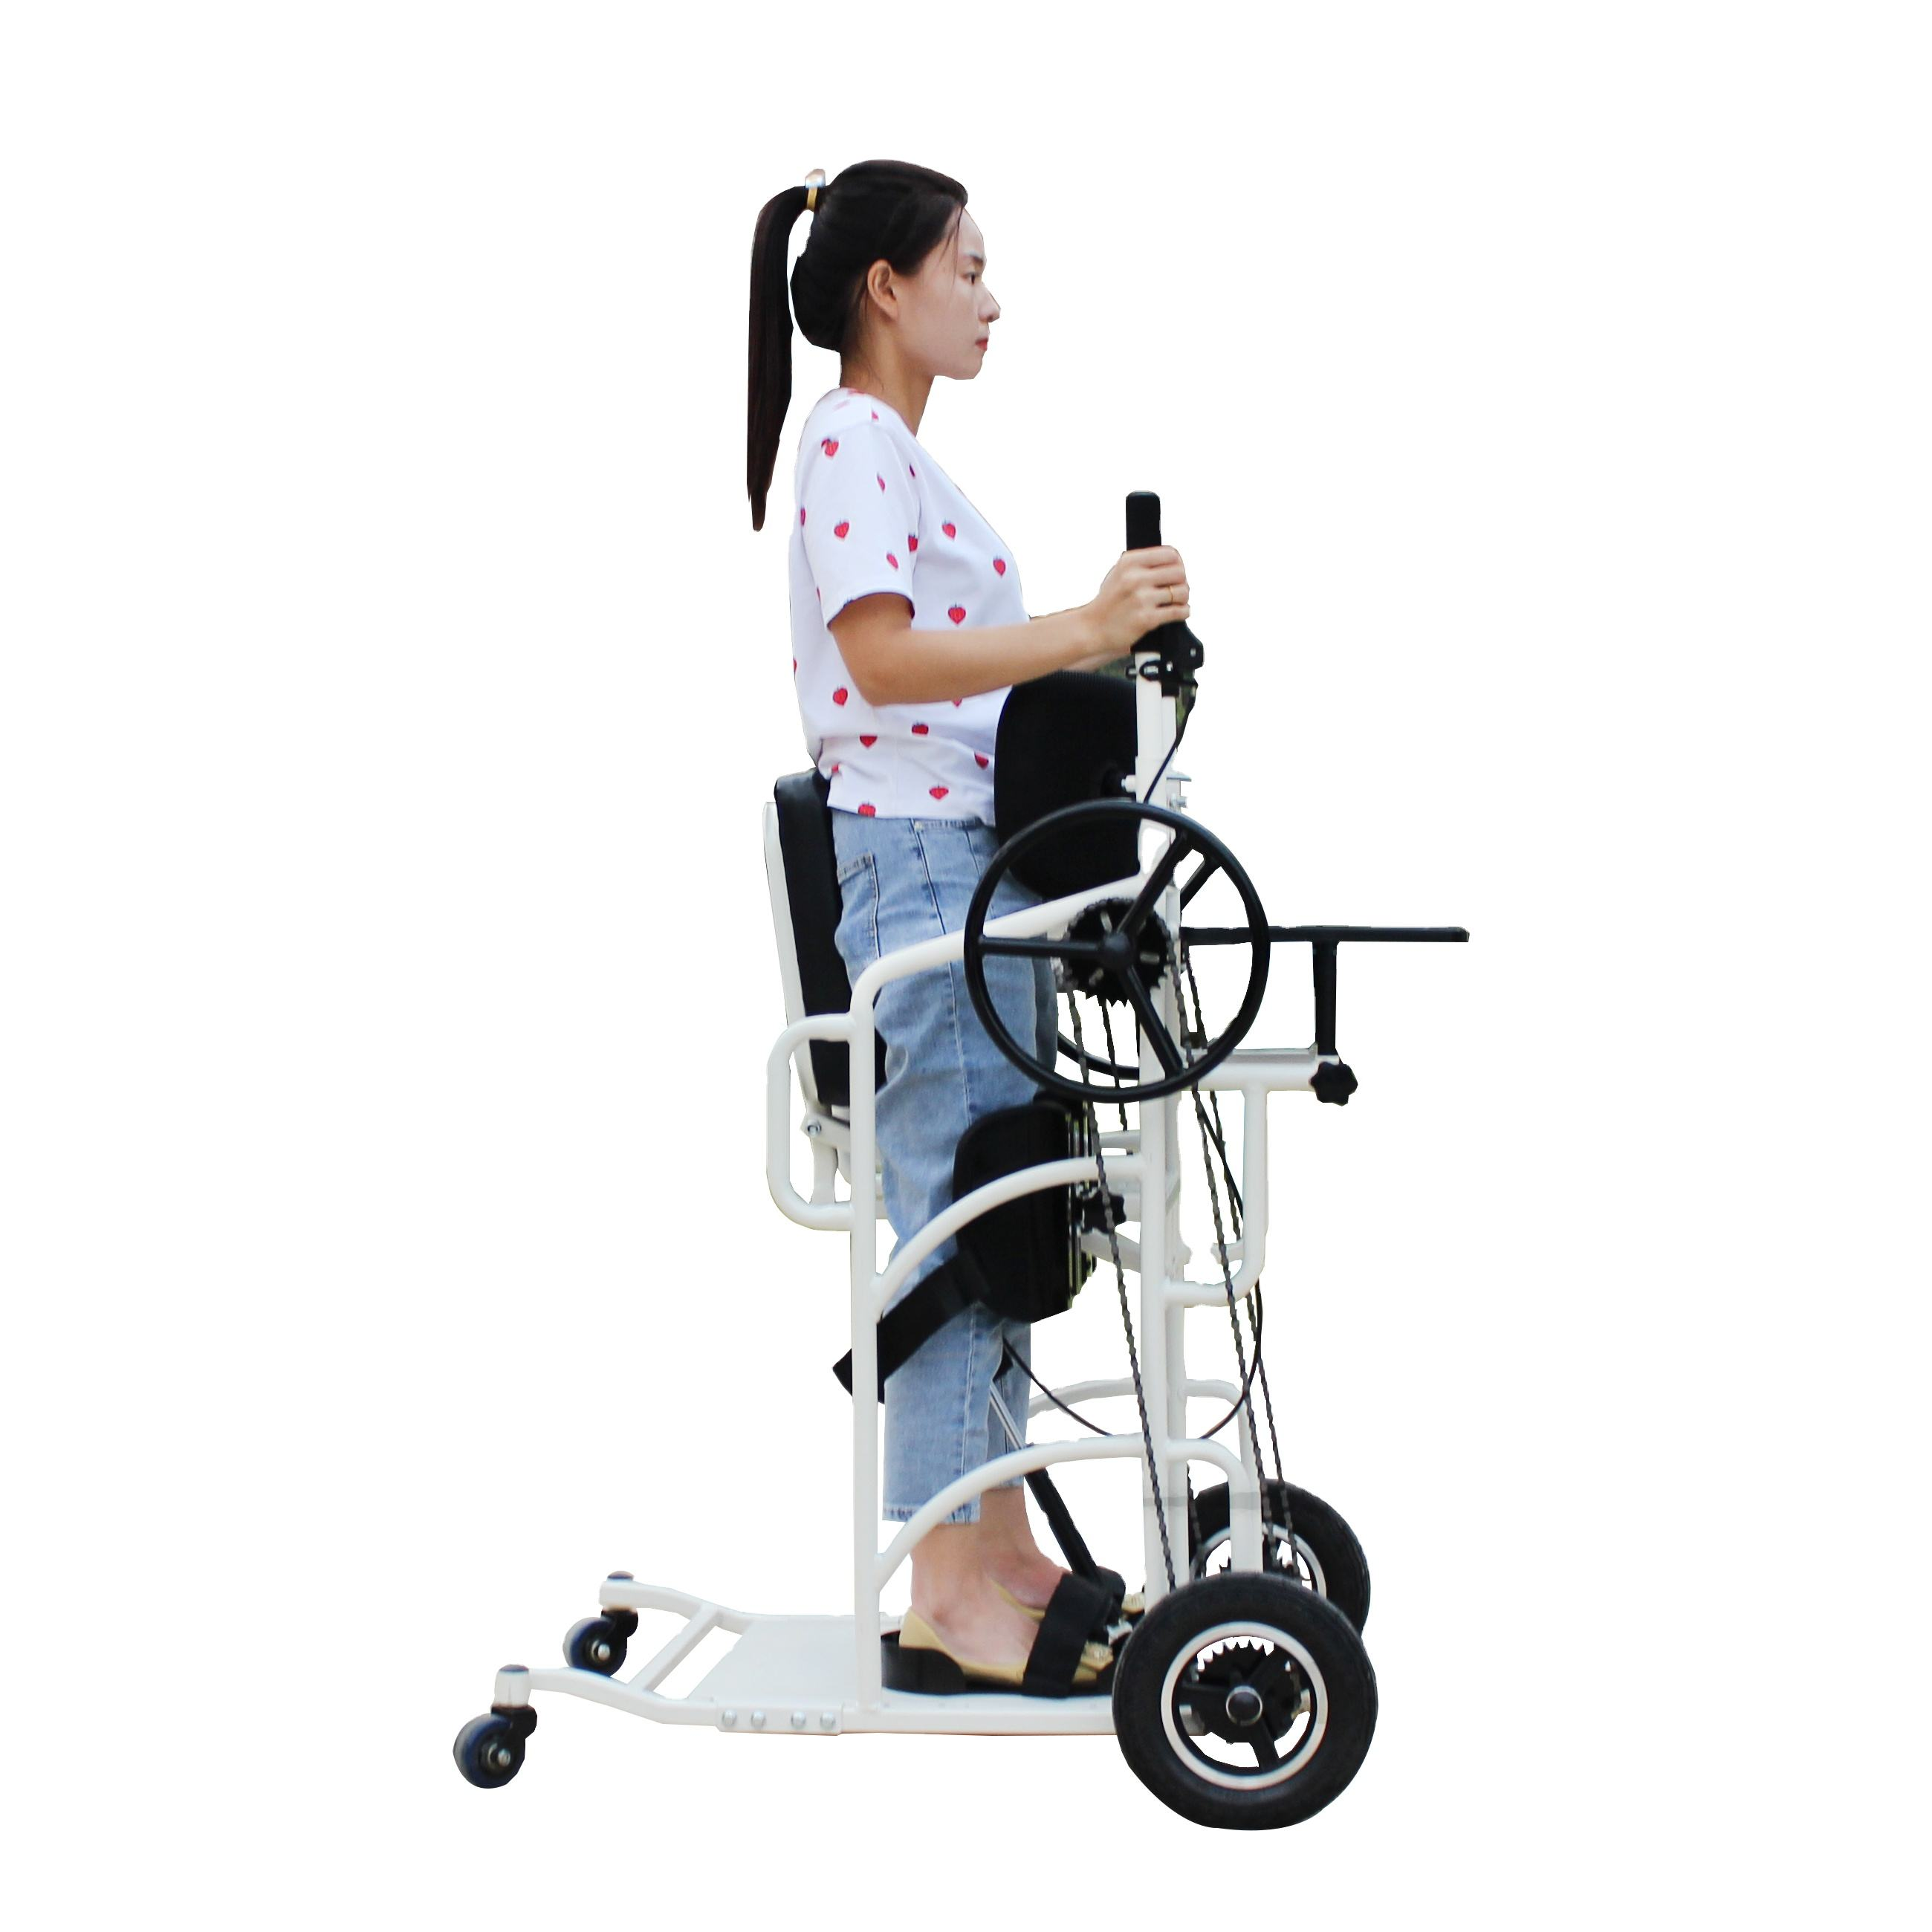 Orthopedic walker for adults walkers for the elderly rollators for the elderly moving aid to the vehicle lifting wheelchair